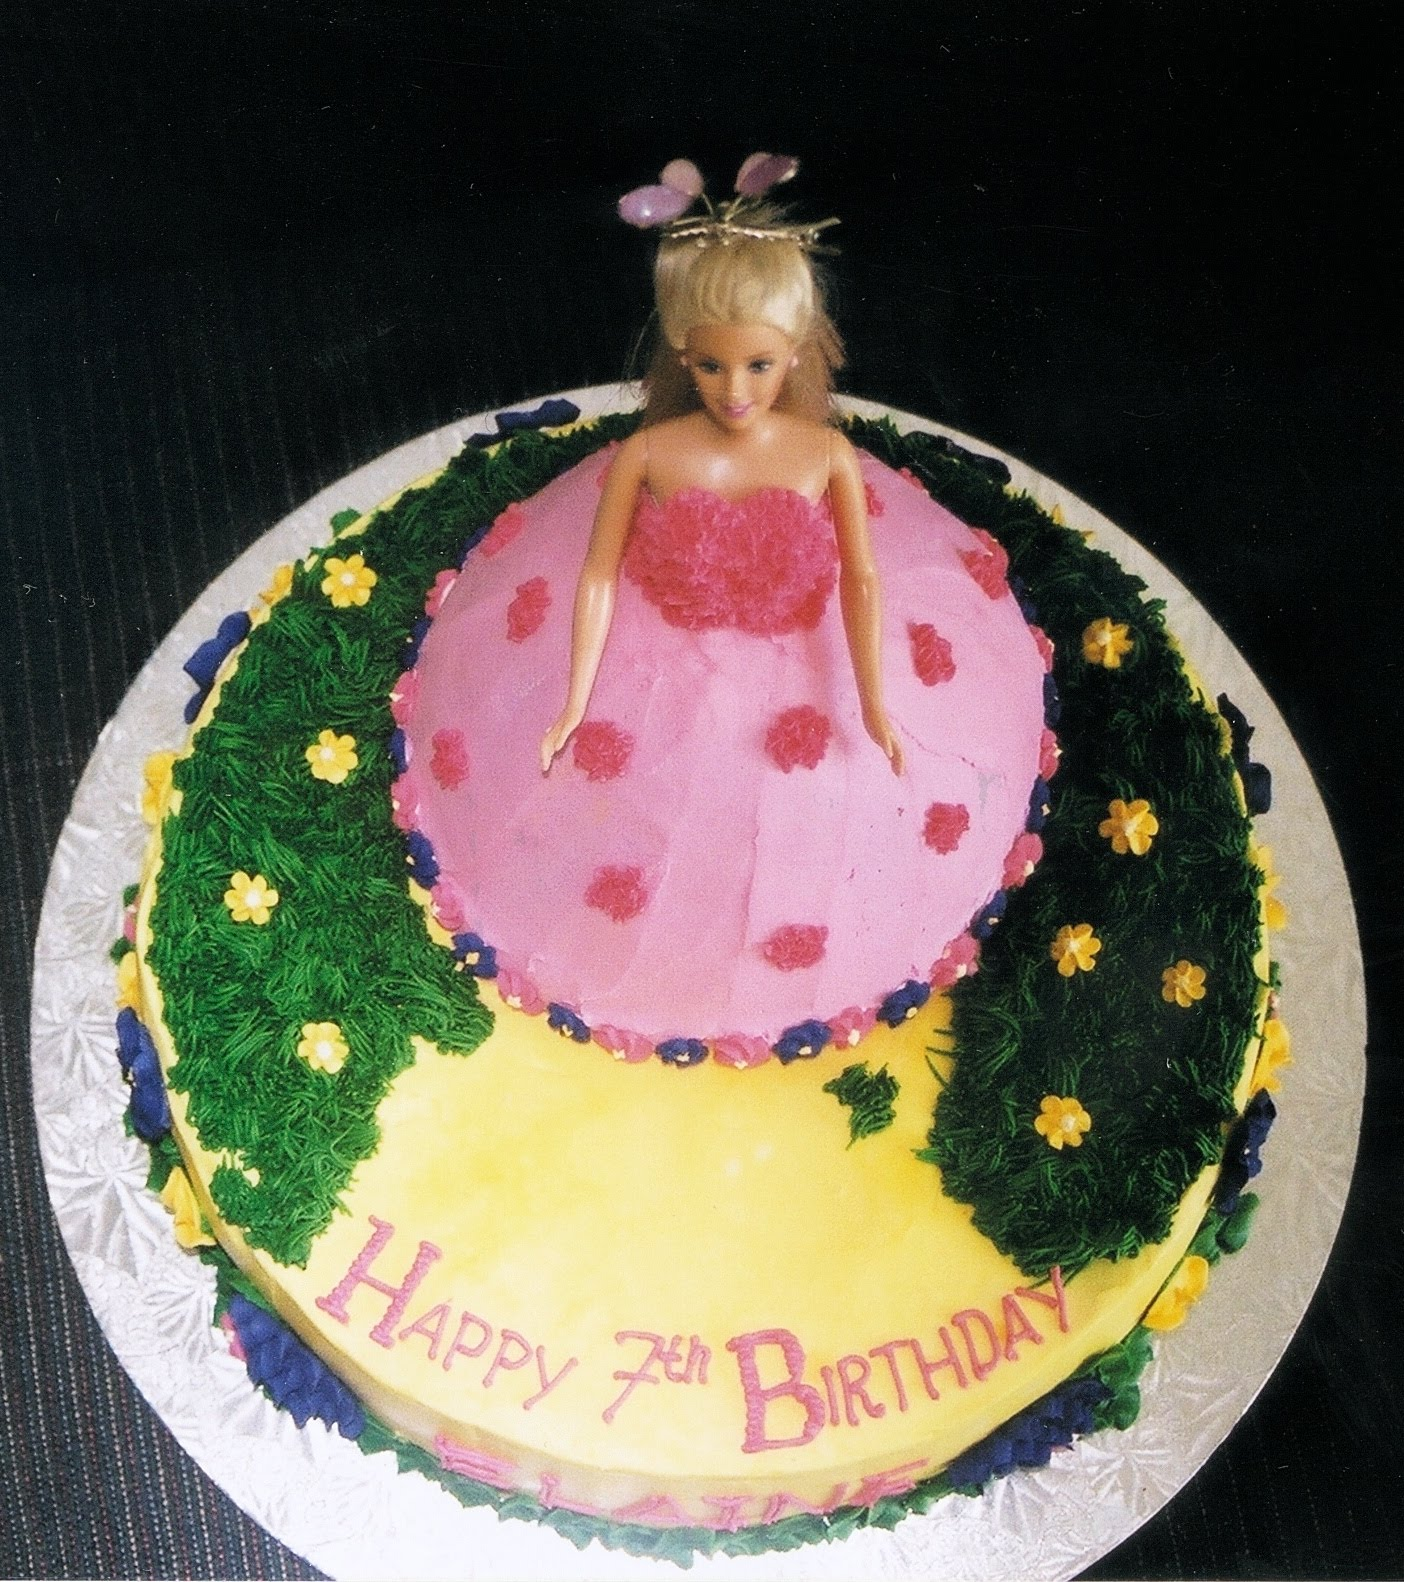 Birthday Cake Designs Barbie : Barbie Cakes   Decoration Ideas Little Birthday Cakes